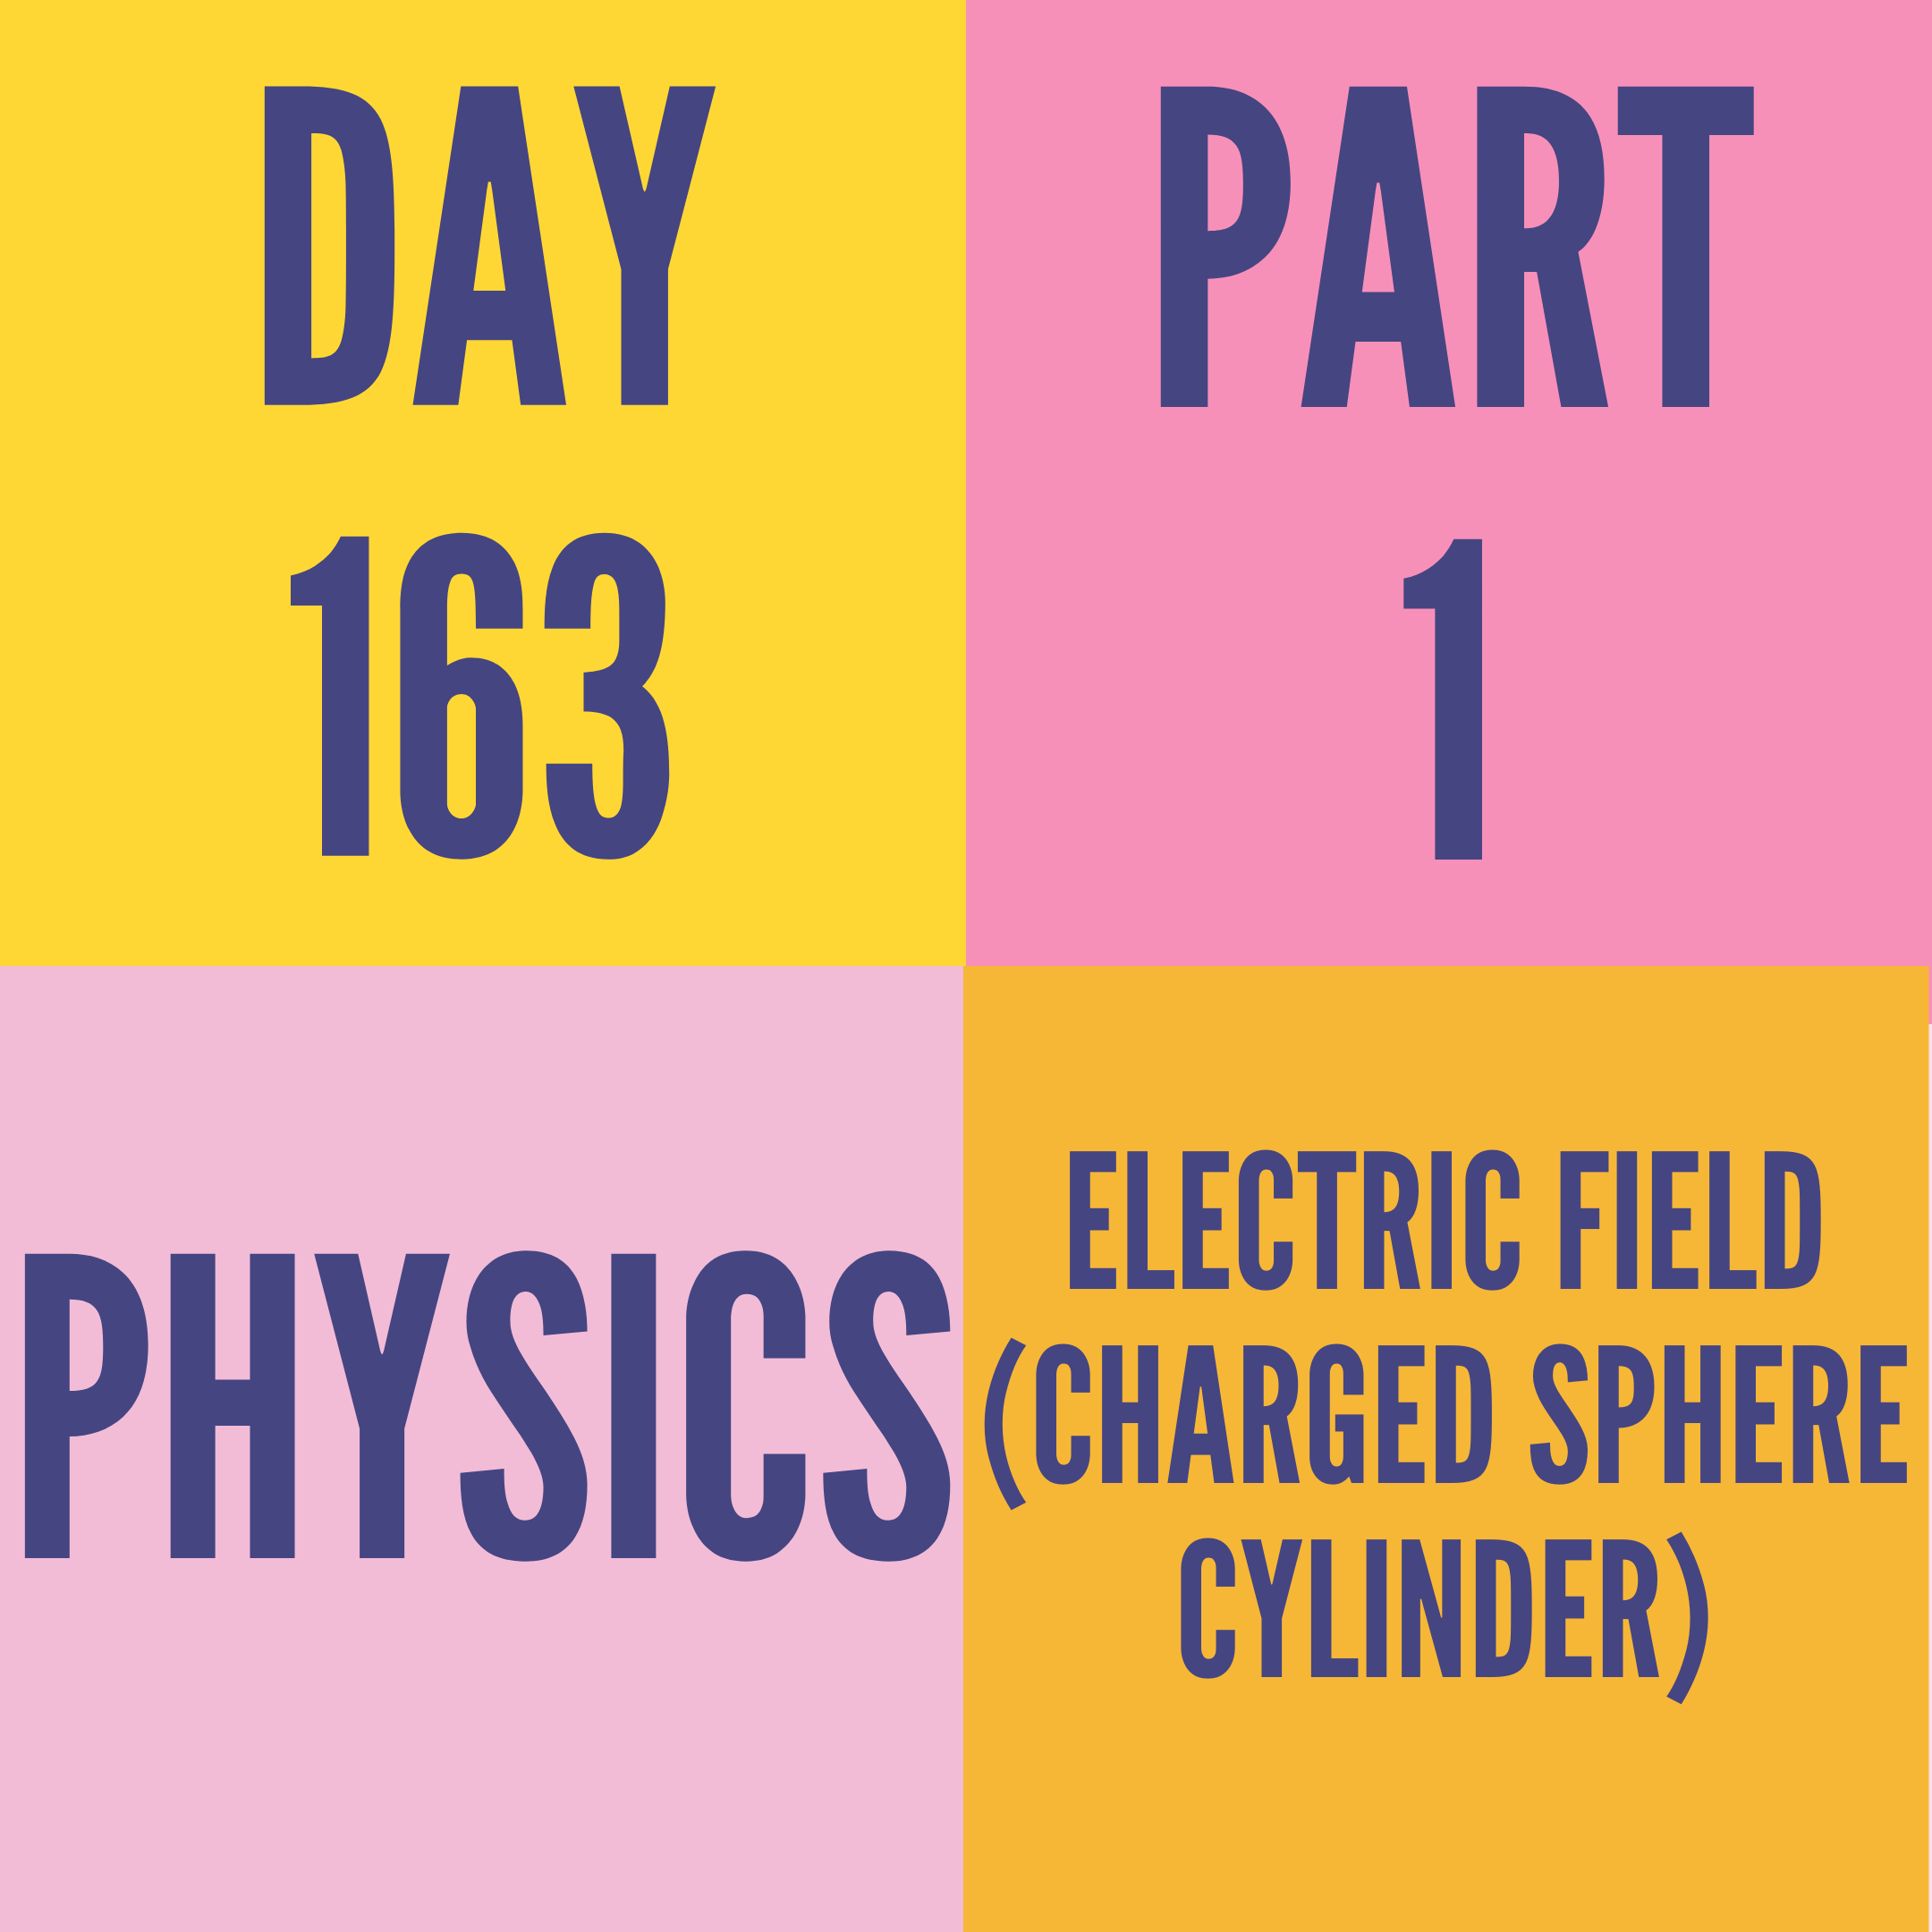 DAY-163 PART-1 ELECTRIC FIELD (CHARGED SPHERE CYLINDER)